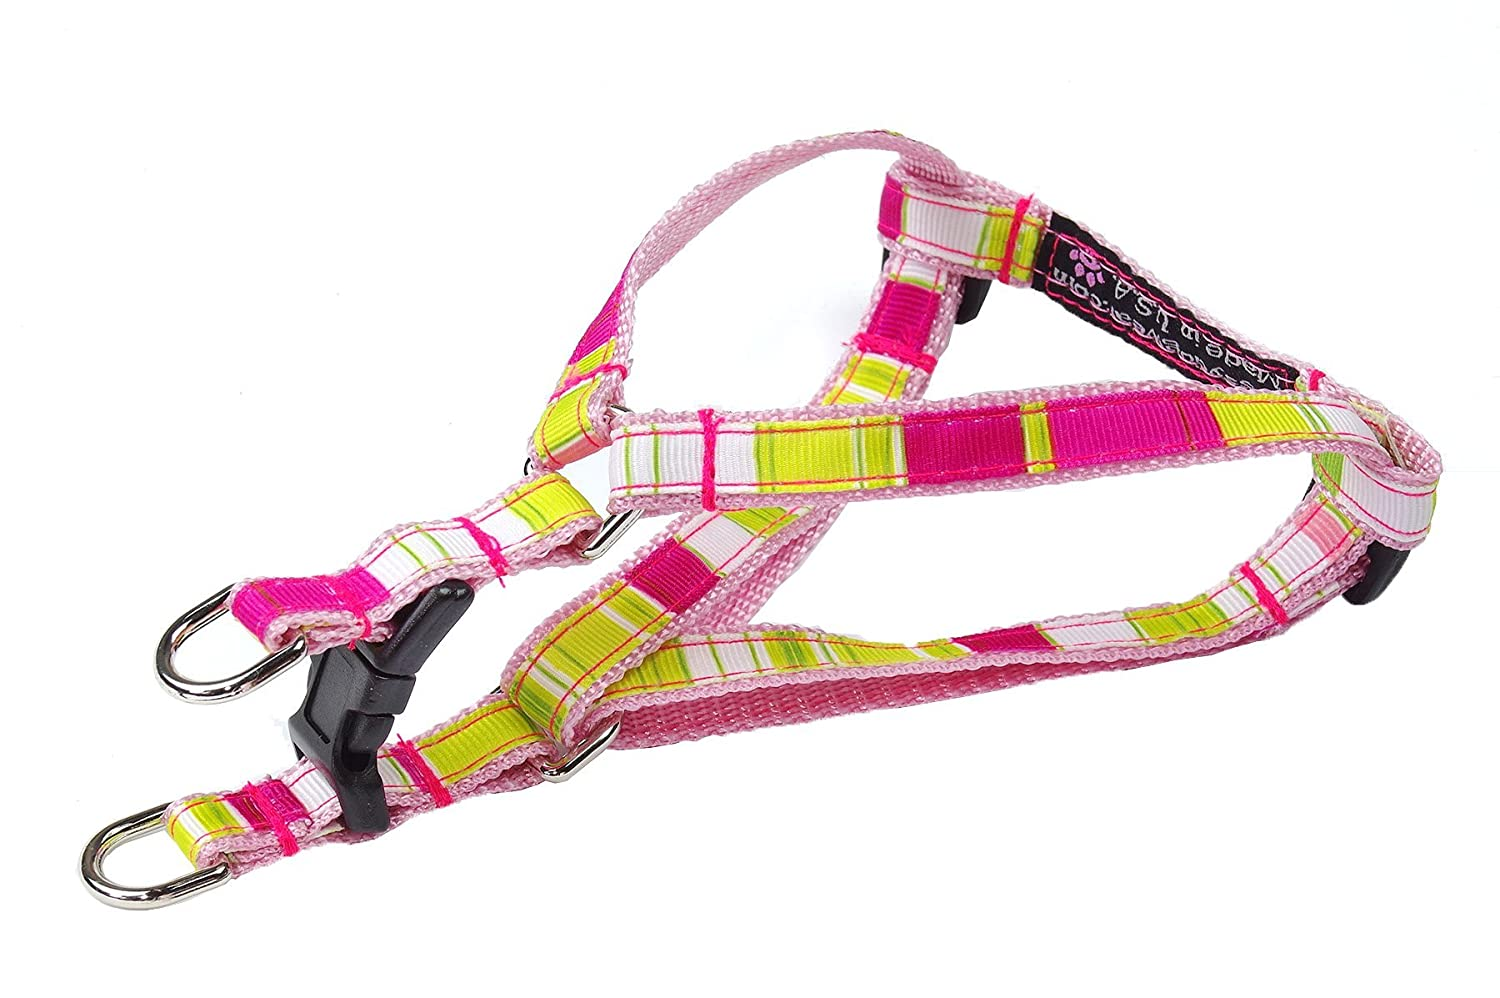 Neon Pink Multicolor X-Small Neon Pink Multicolor X-Small Sassy Dog Wear Dog Harness, X-Small, Neon Pink Multi Stripe, 1 2-Inch Wide, Adjusts 8-16-Inch